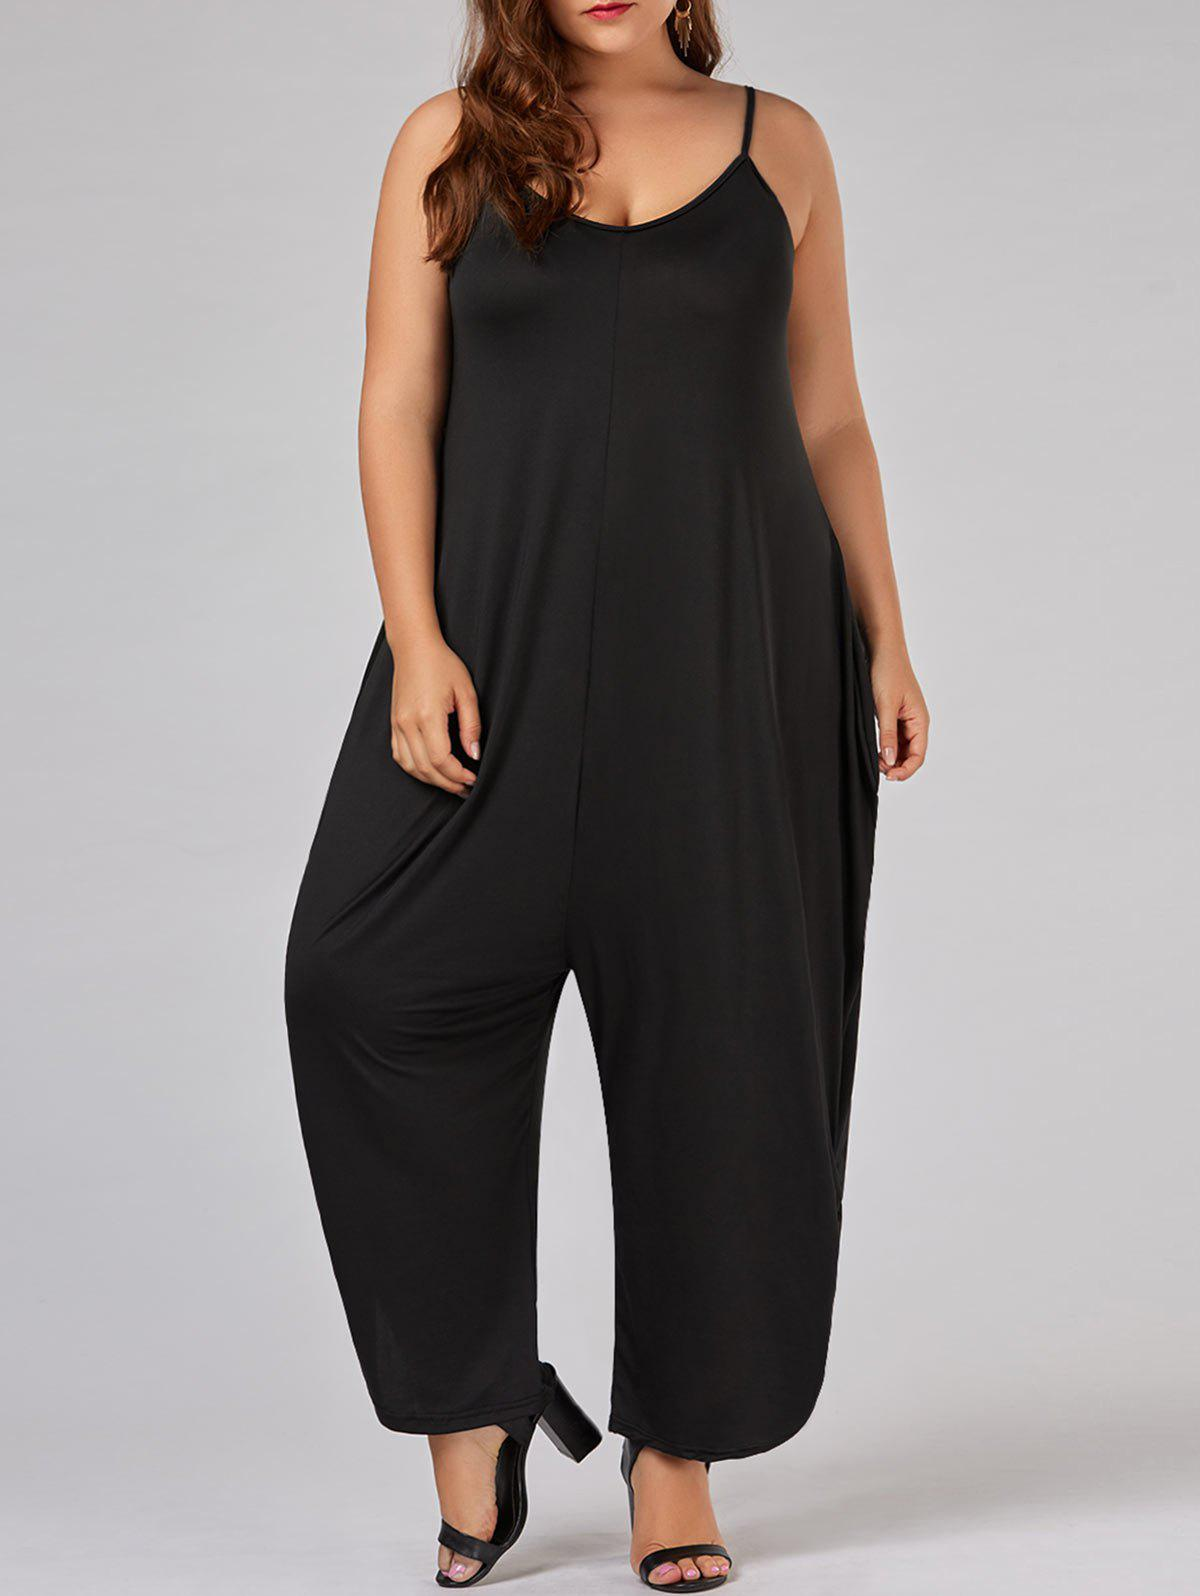 Plus Size Low Cut Spaghetti Strap Baggy Jumpsuit - BLACK 7XL